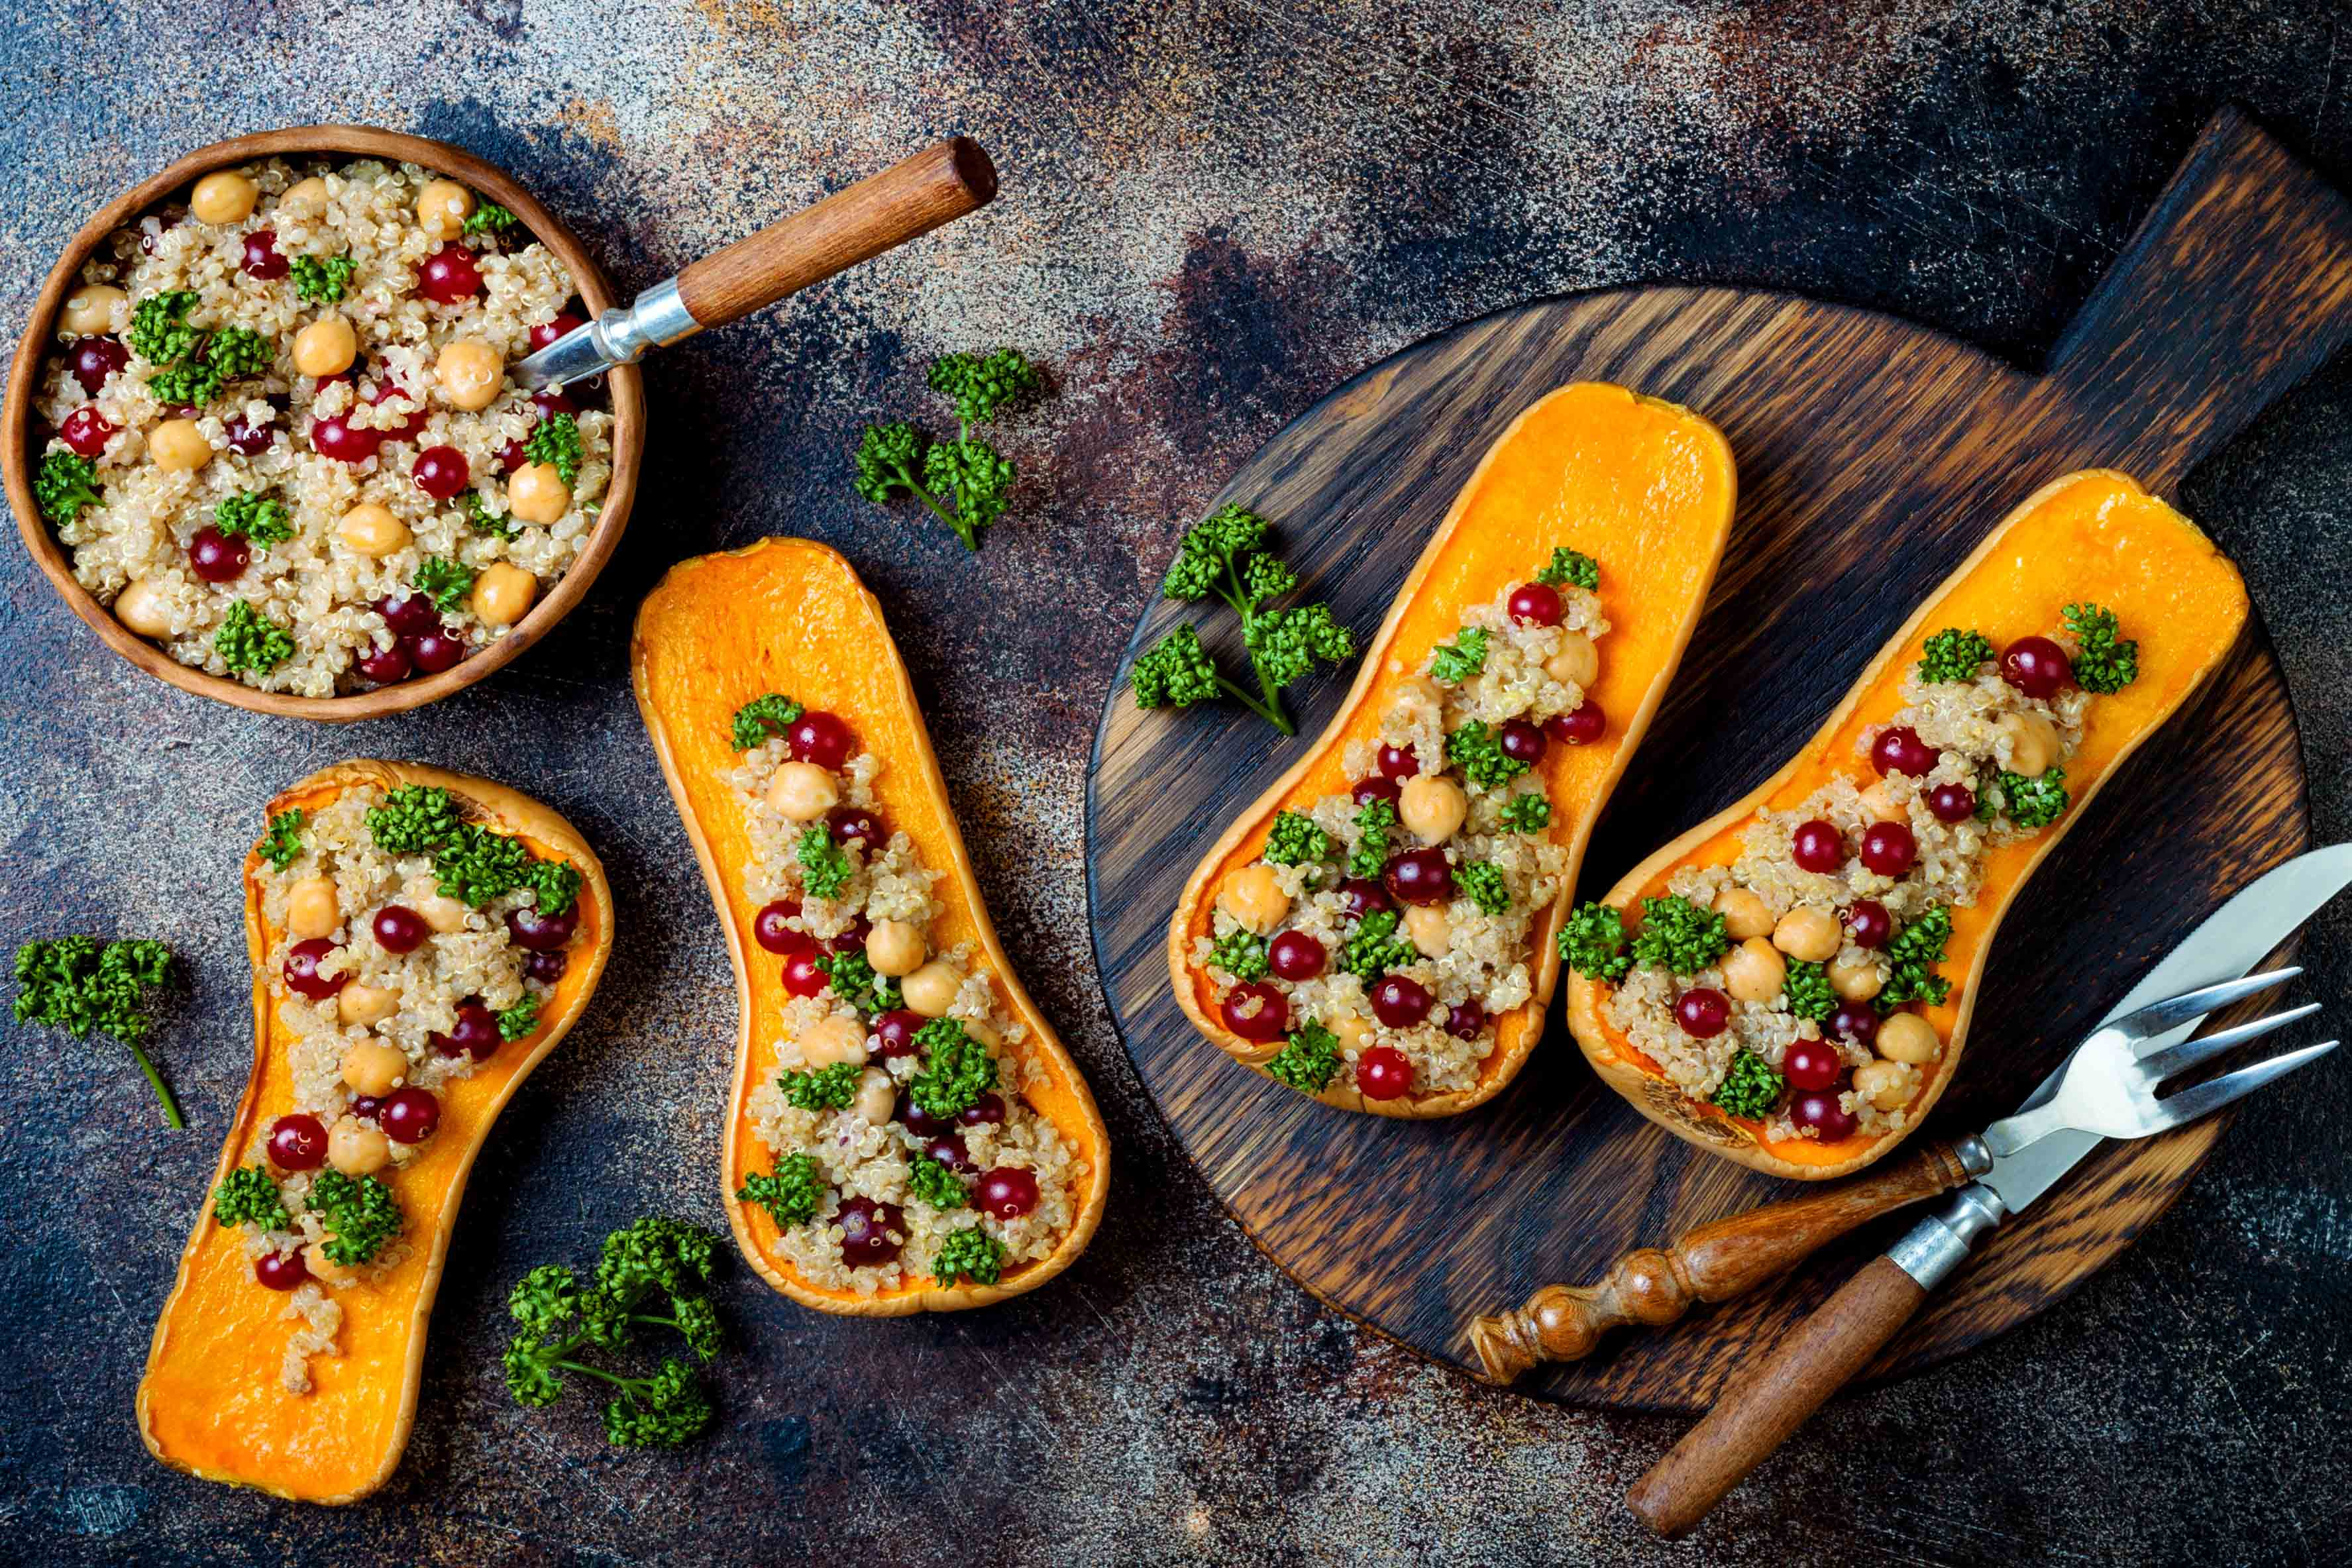 Four butternut squash halves stuffed with quinoa and cranberries sitting on a wooden board on a dark countertop next to a bowl of cranberry quinoa mixture.